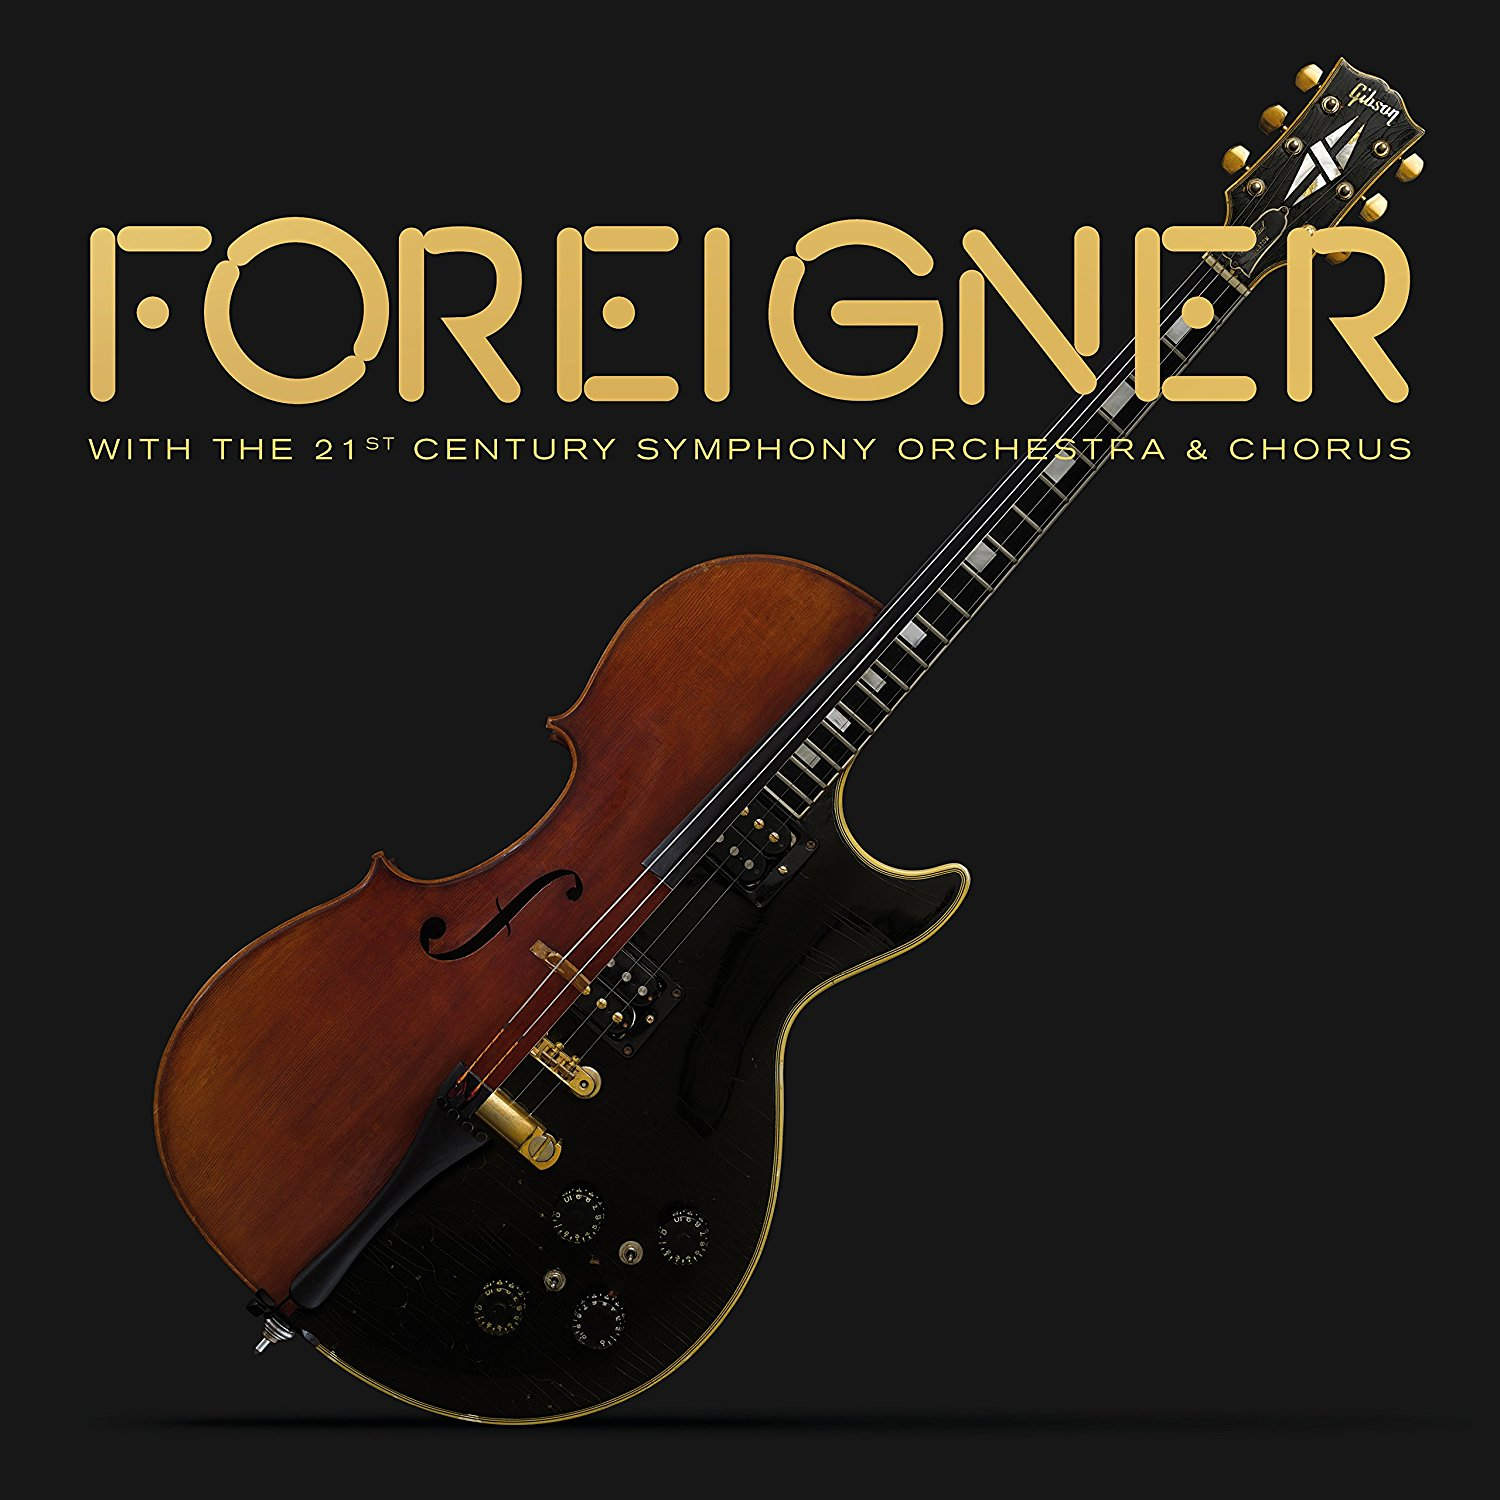 Foreigner: With The 21st Century Symphony Orchestra & Chorus (2018) Book Cover